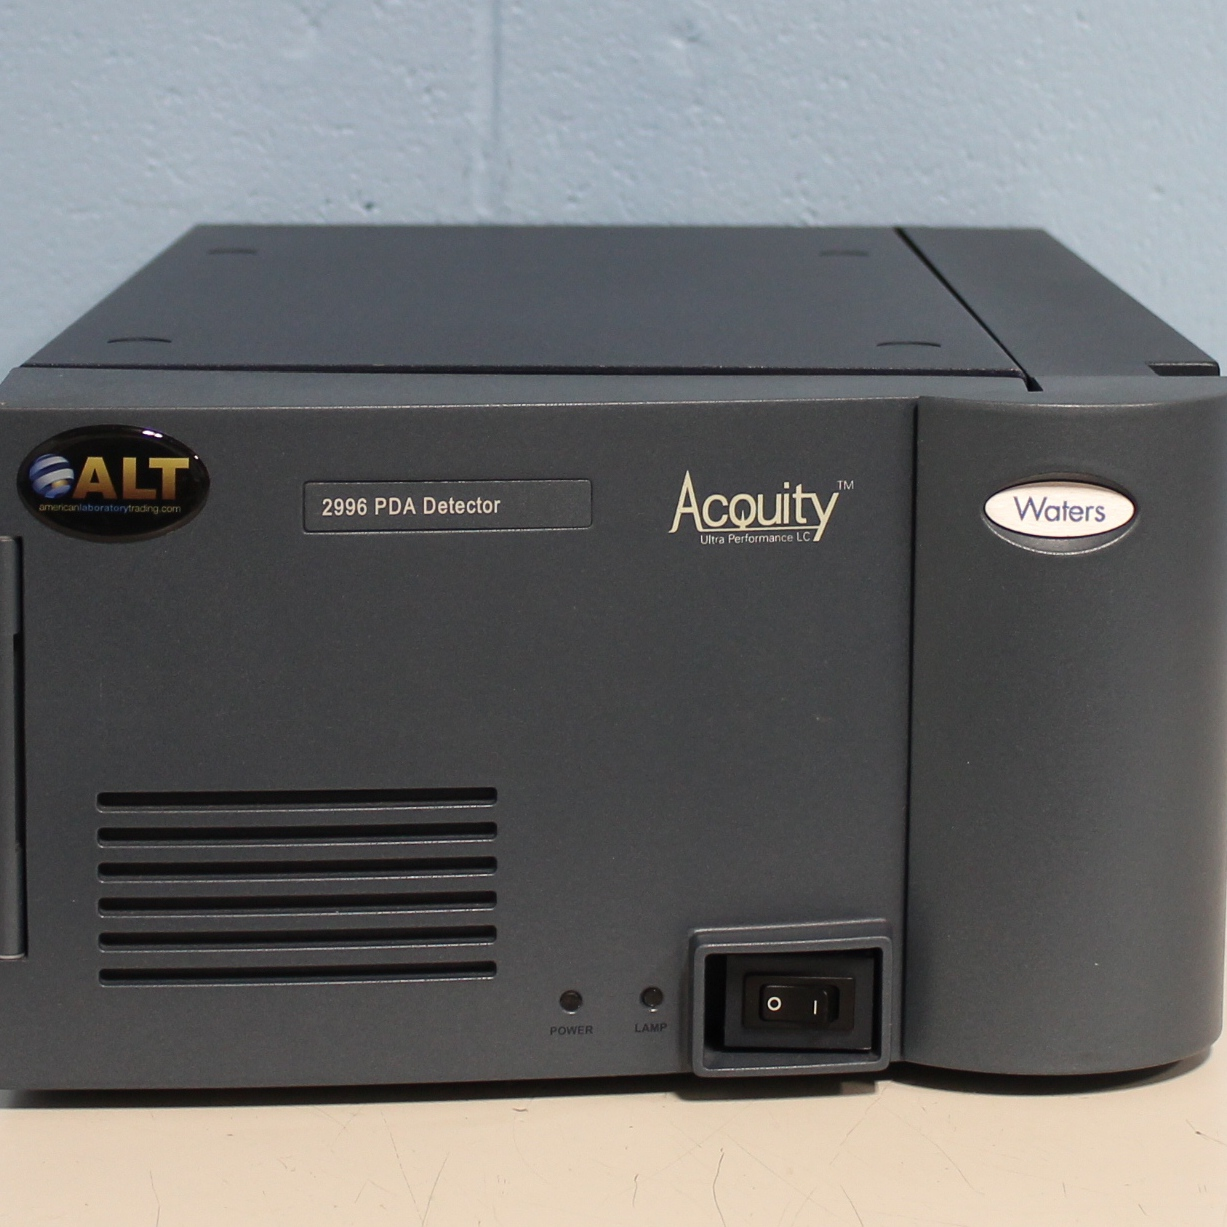 2996 Acquity Photo Diode Array Detector Name